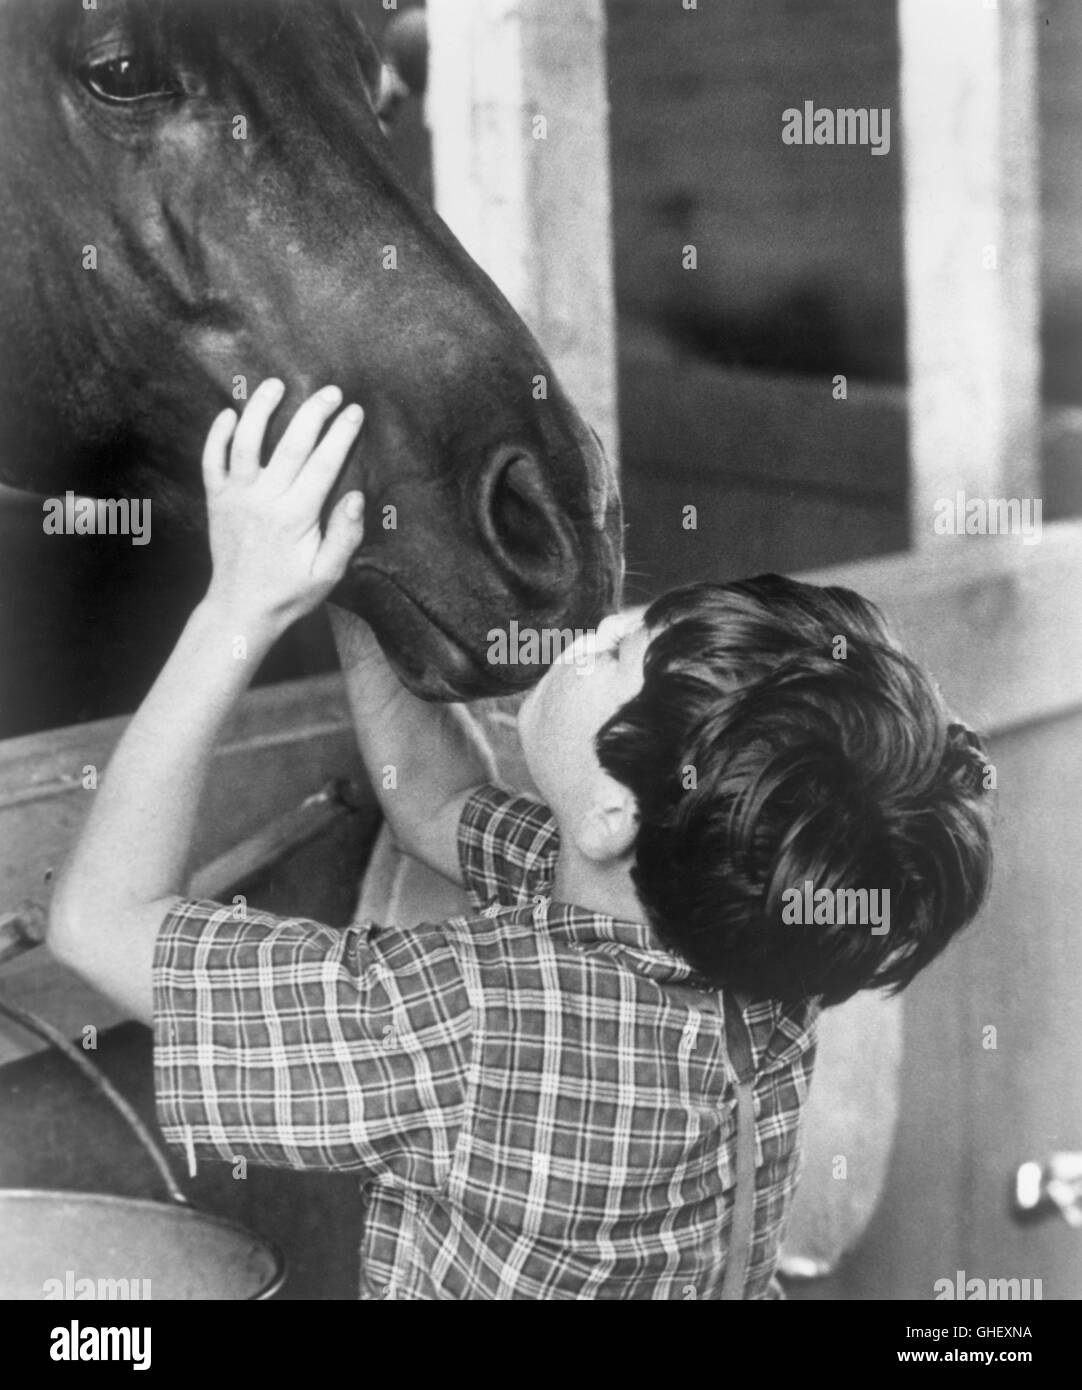 THE BLACK STALLION USA 1979 Carroll Ballard Little Alec Ramsay (KELLY RENO) kissed his beloved horse, The Black. - Stock Image